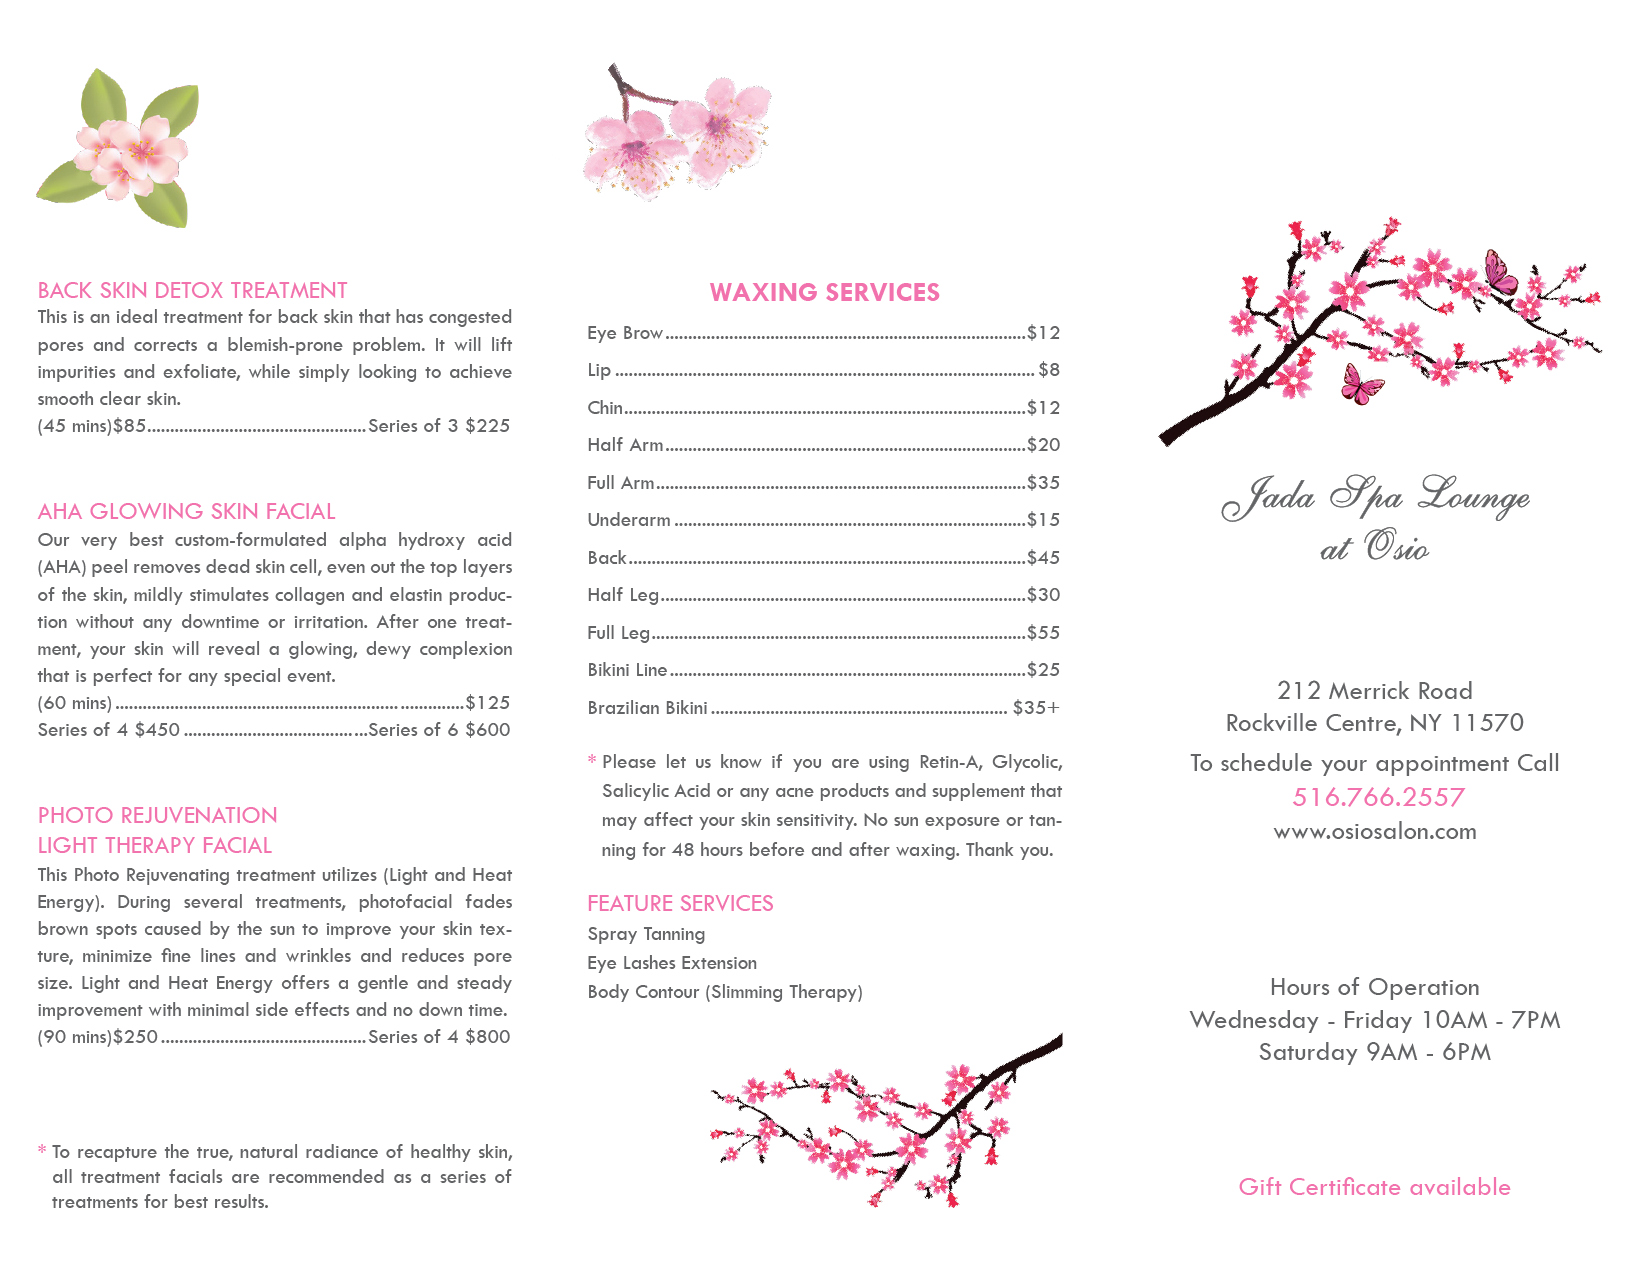 Brochure - Jada Spa Lounge at Osio2